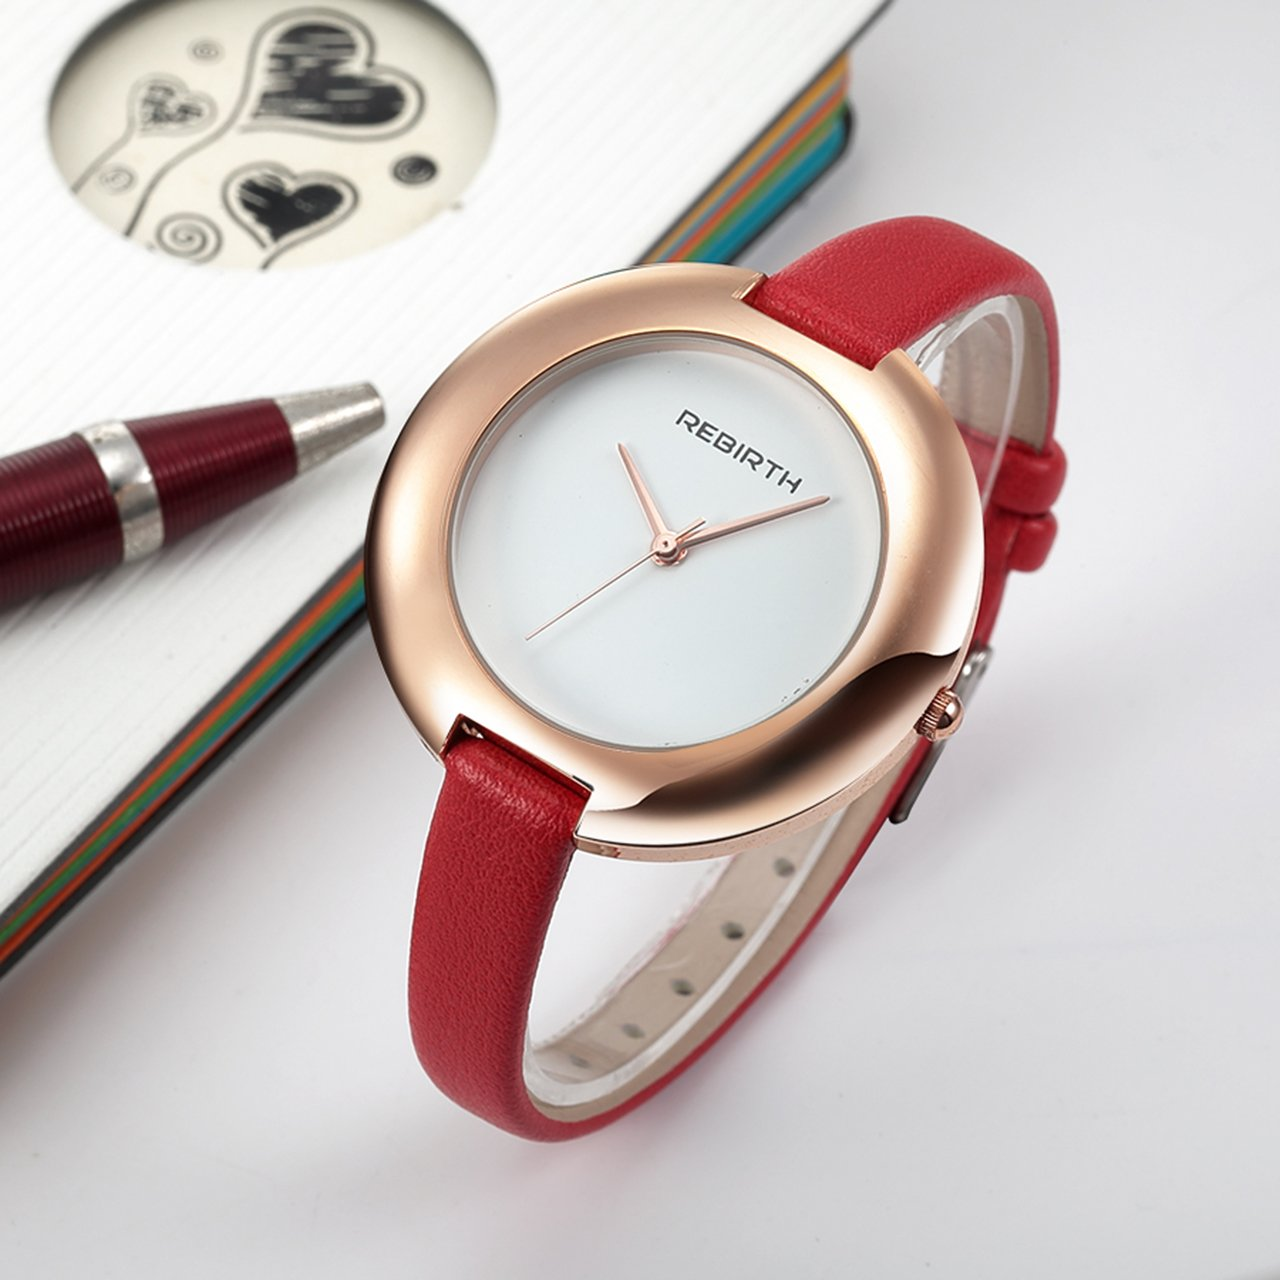 Top Plaza Ladies Red Fashion Big Face Watch Analog Quartz Thin PU Leather Blank Space Dial Daily Waterproof by Top Plaza (Image #4)